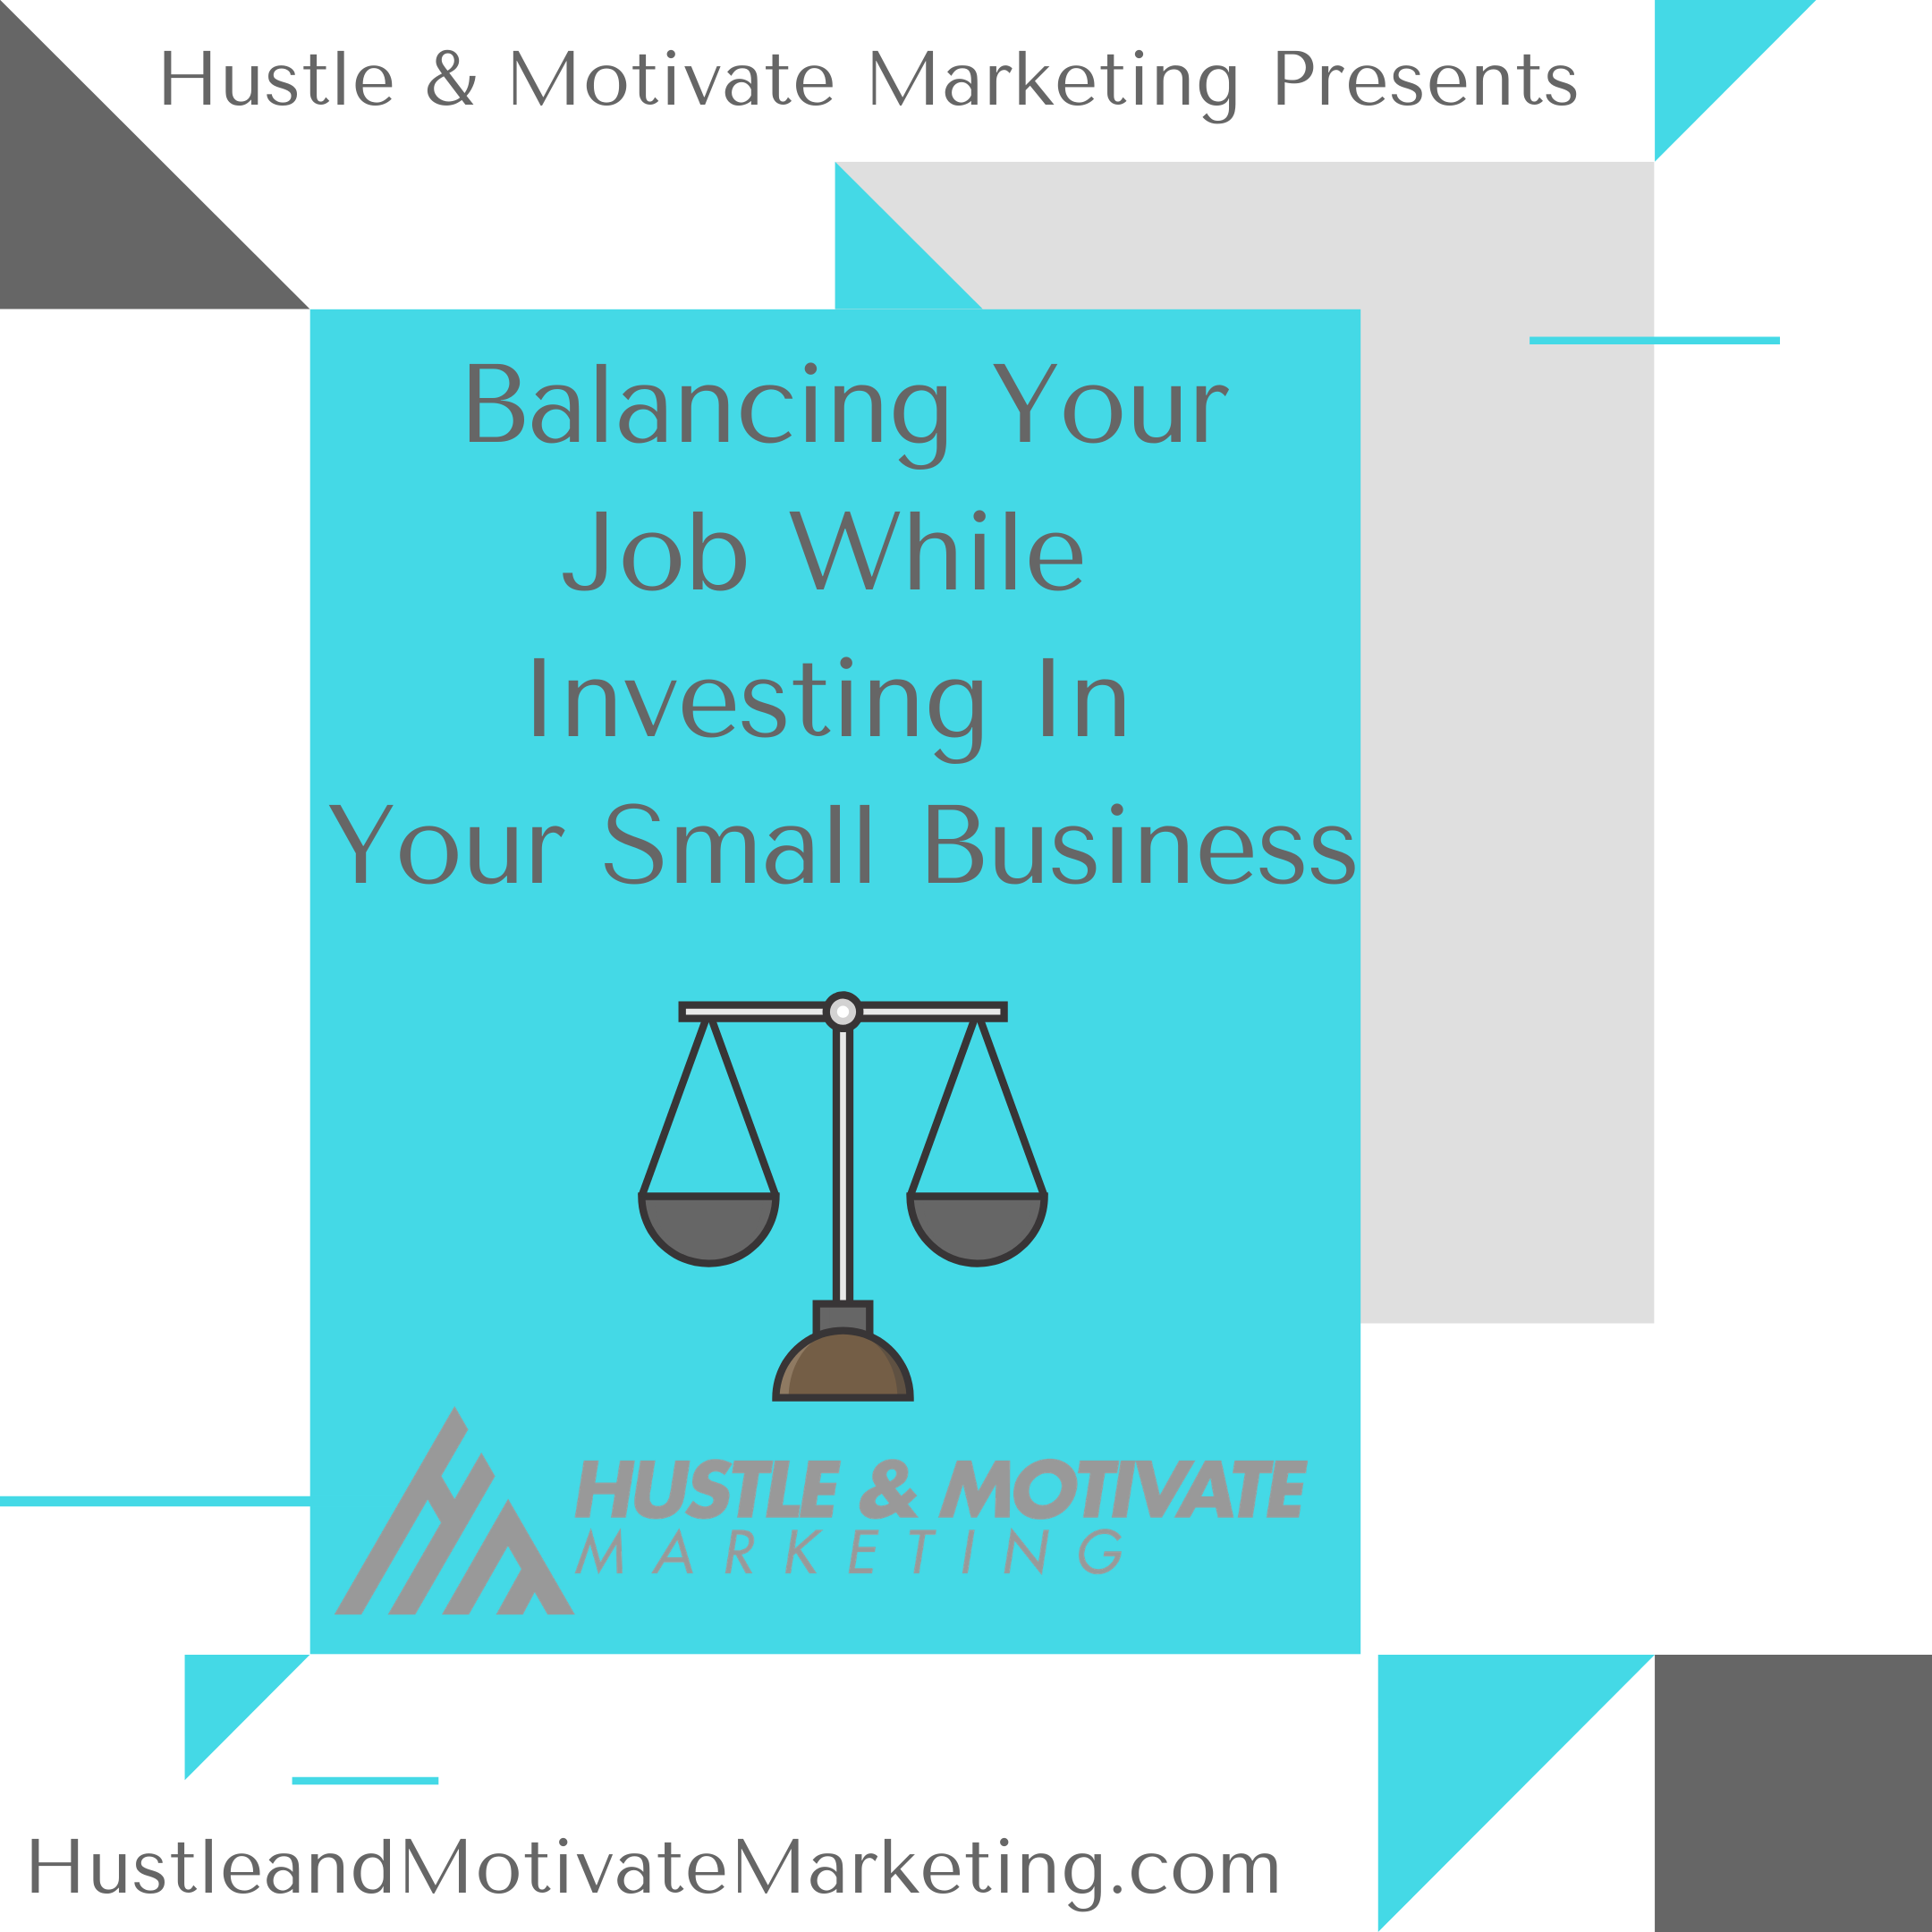 Balancing Your Job While Investing In Your Small Business